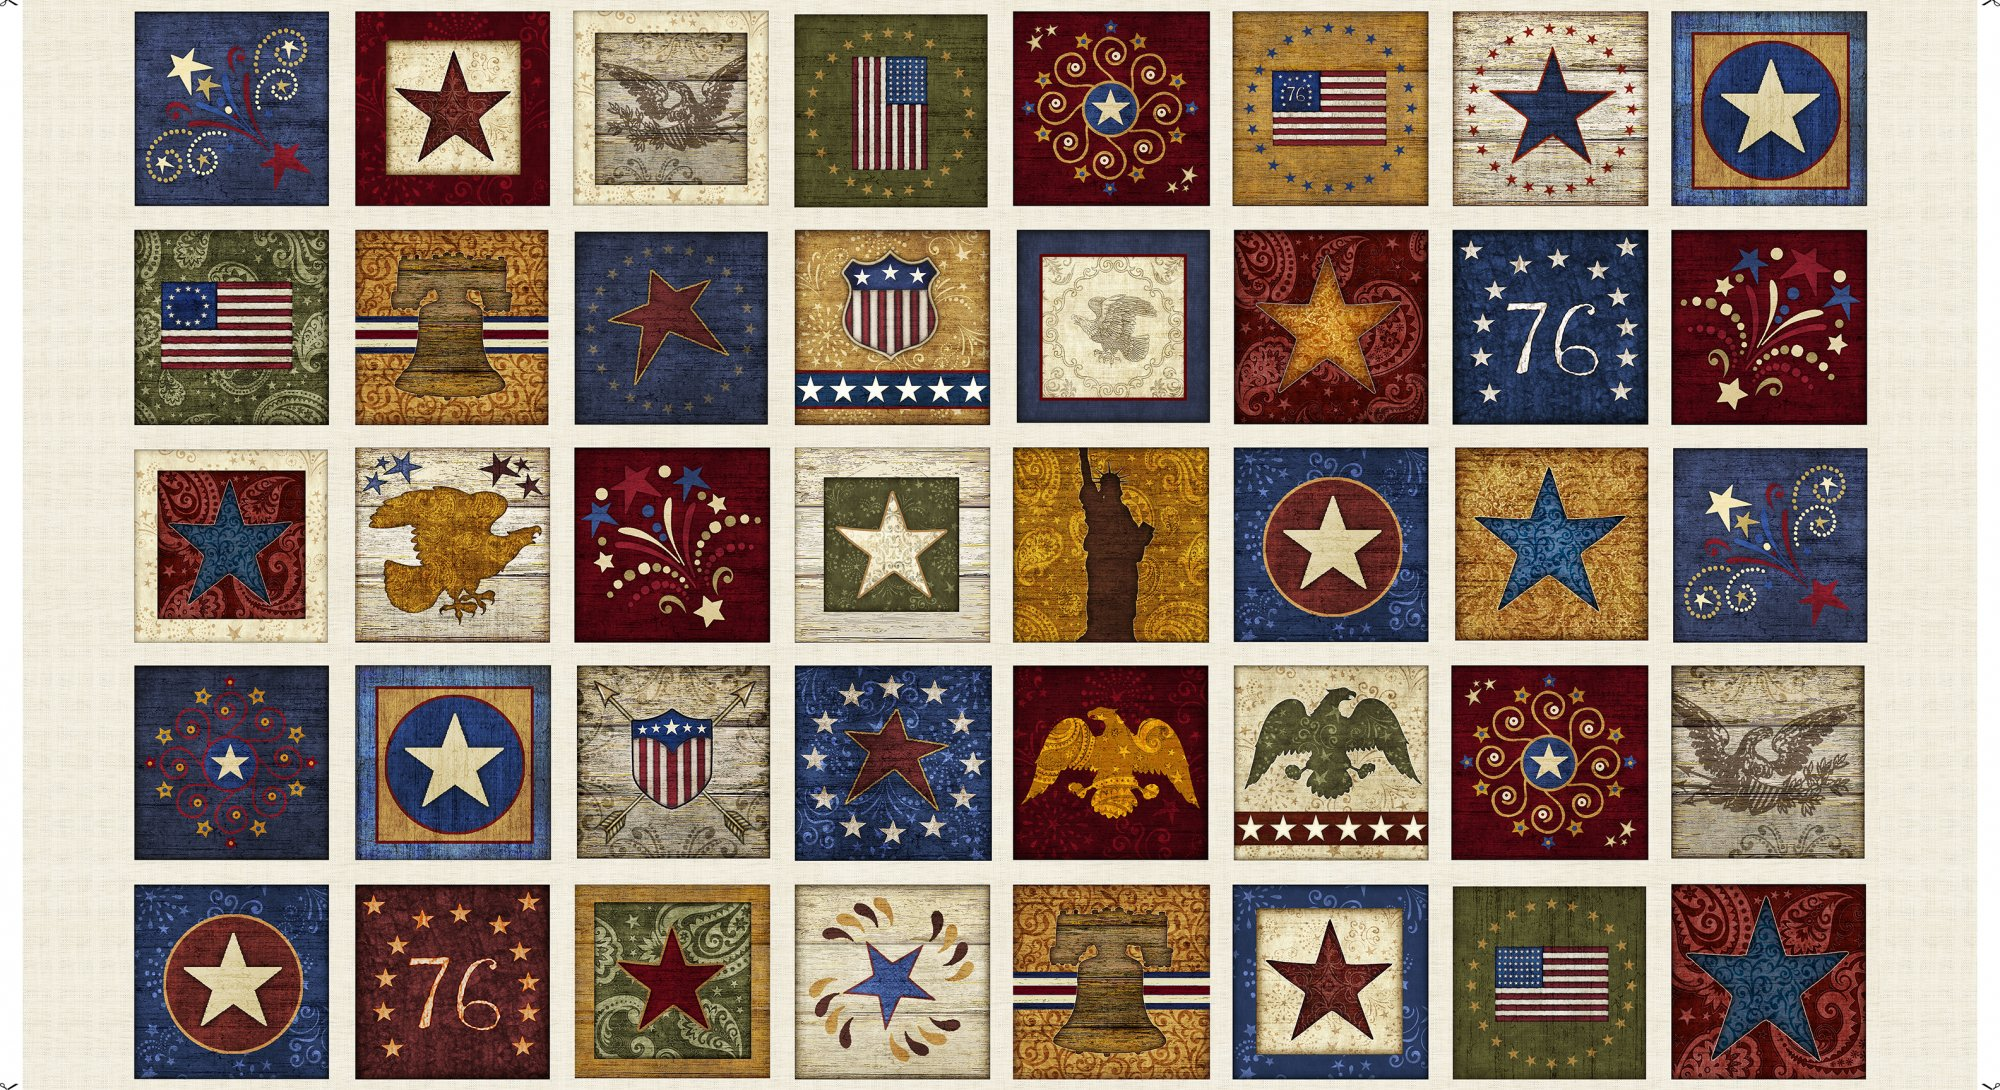 Stars & Stripes Forever - Patriotic Patches Panel